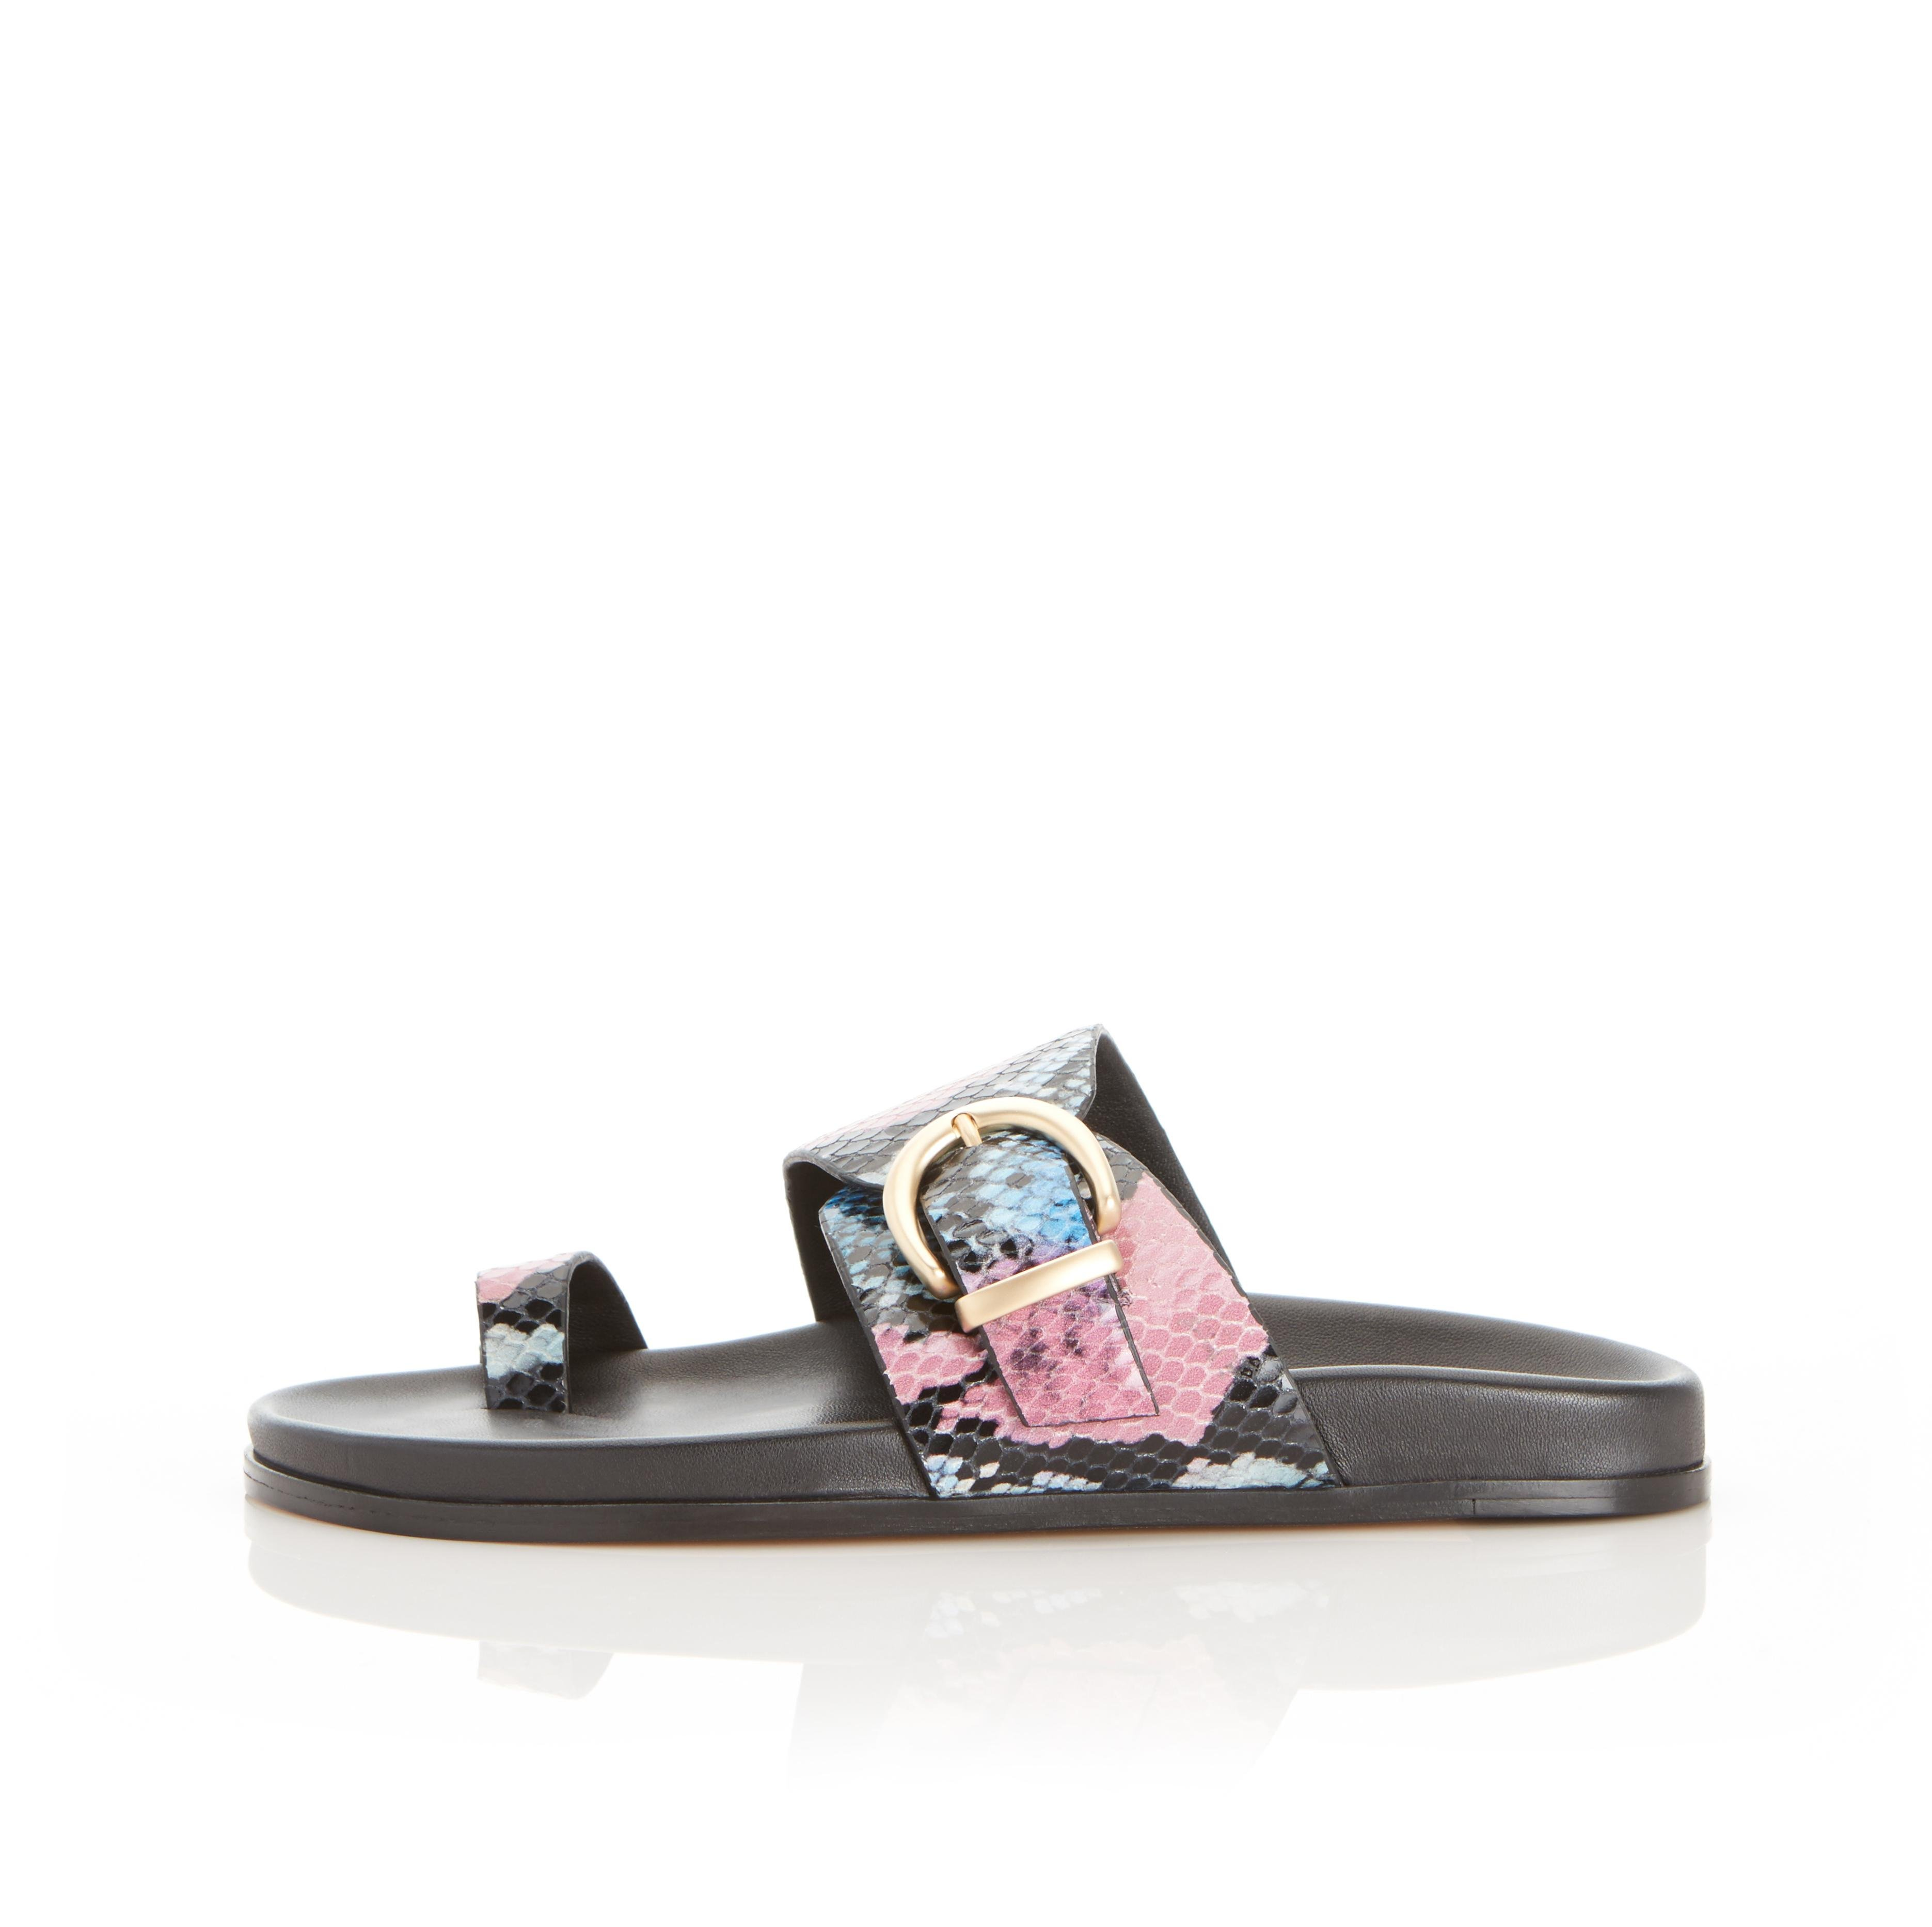 Cyrus | Leather Slide Sandal with Contoured Footbed